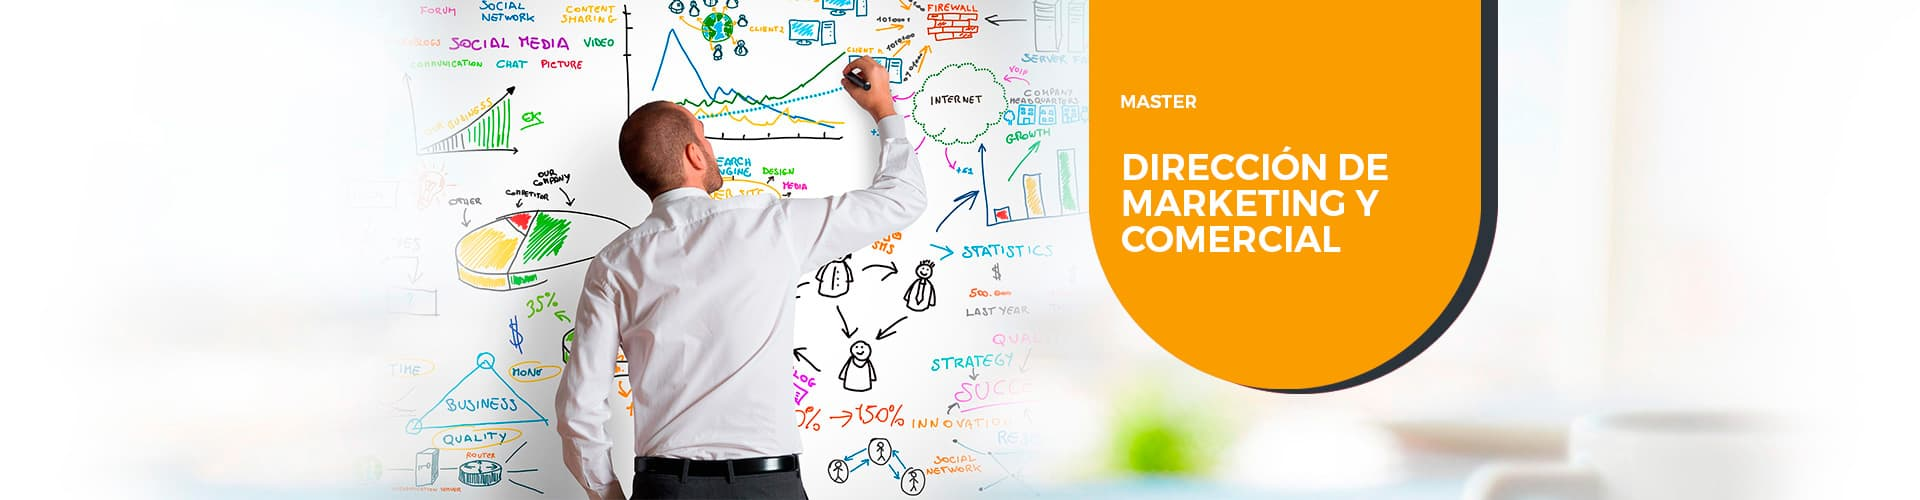 Master de dirección de marketing y comercial